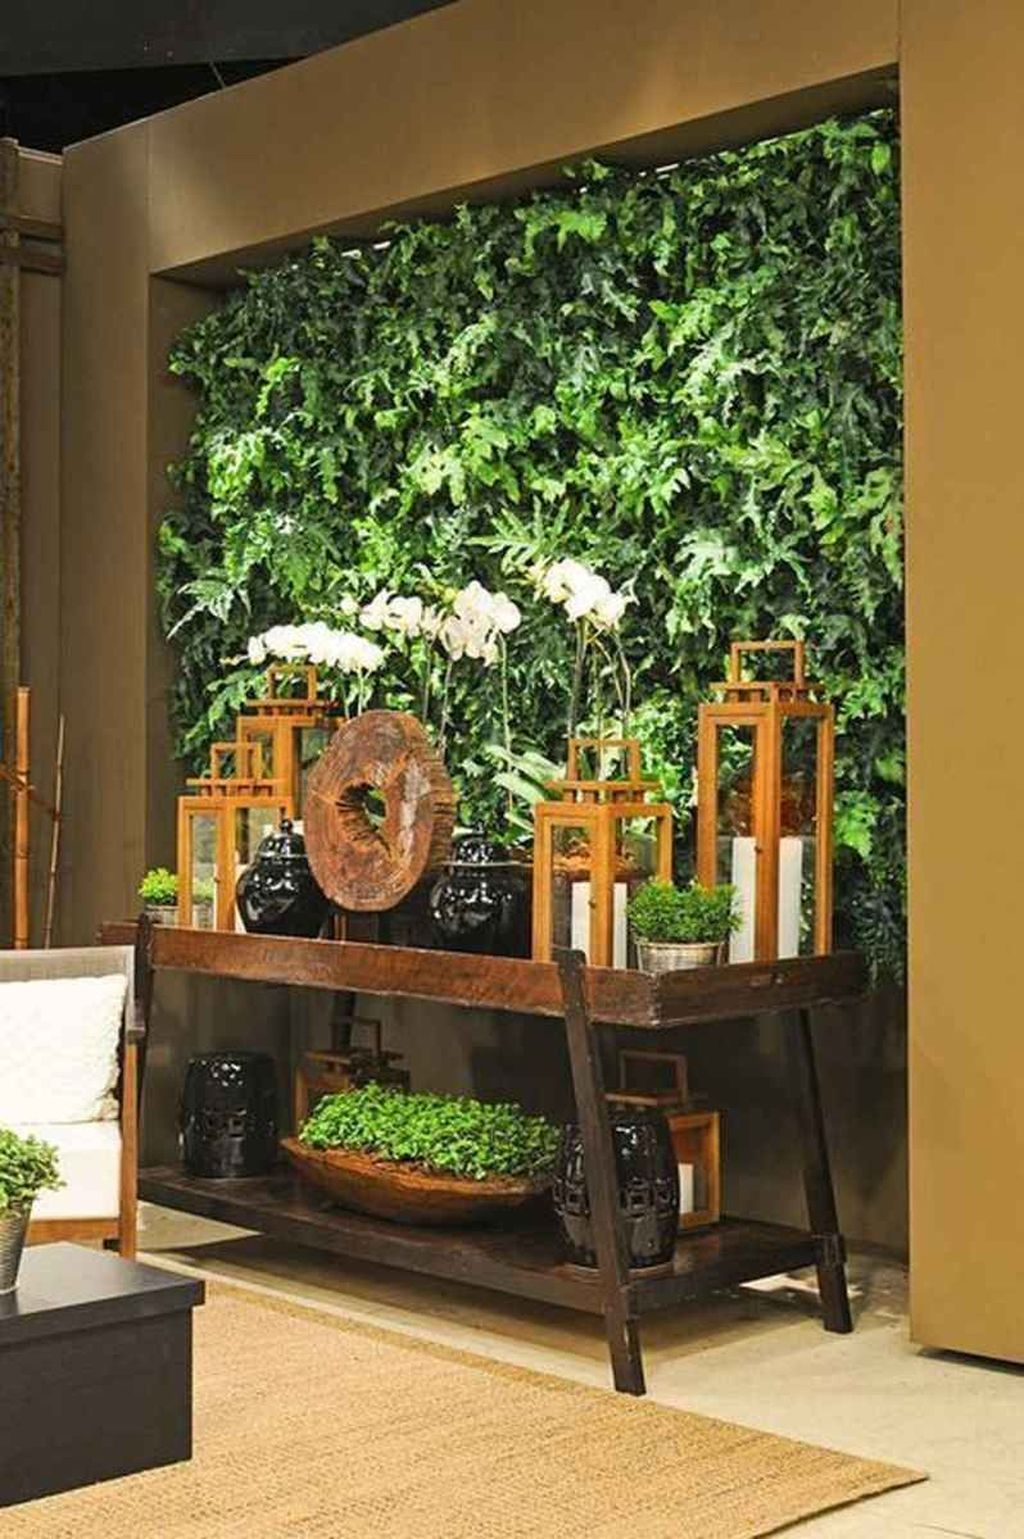 Amazing Living Wall Indoor Decoration Ideas 18